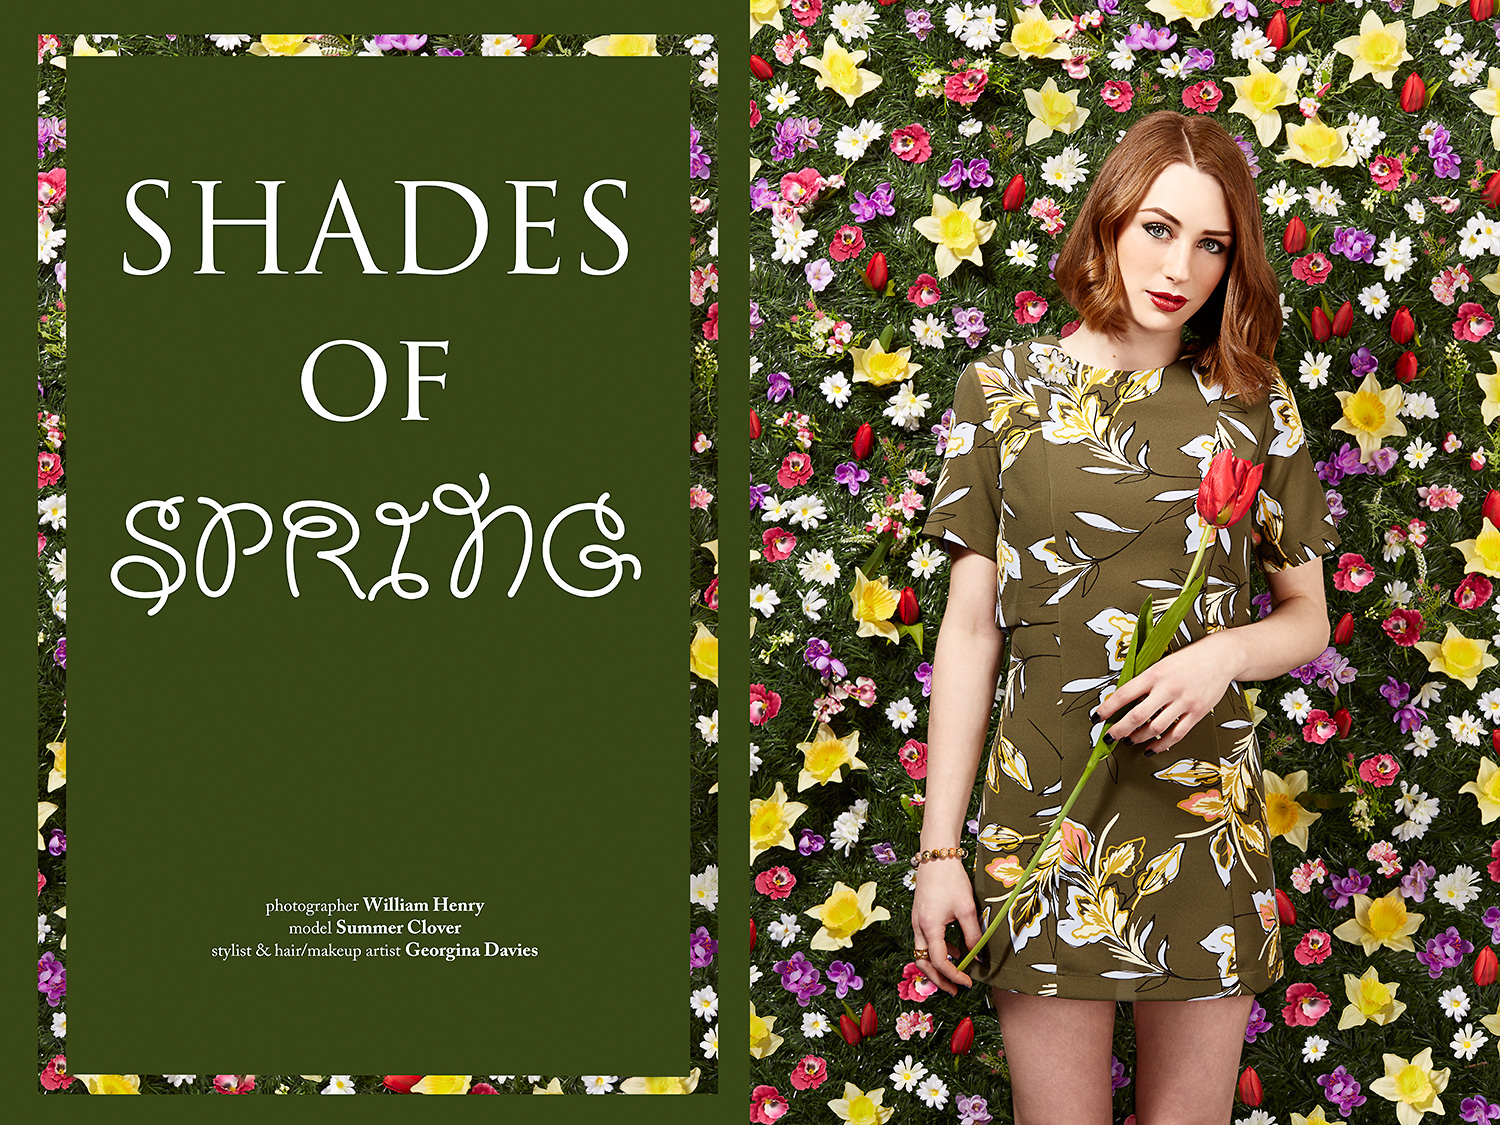 ShadesofSpring01.jpg